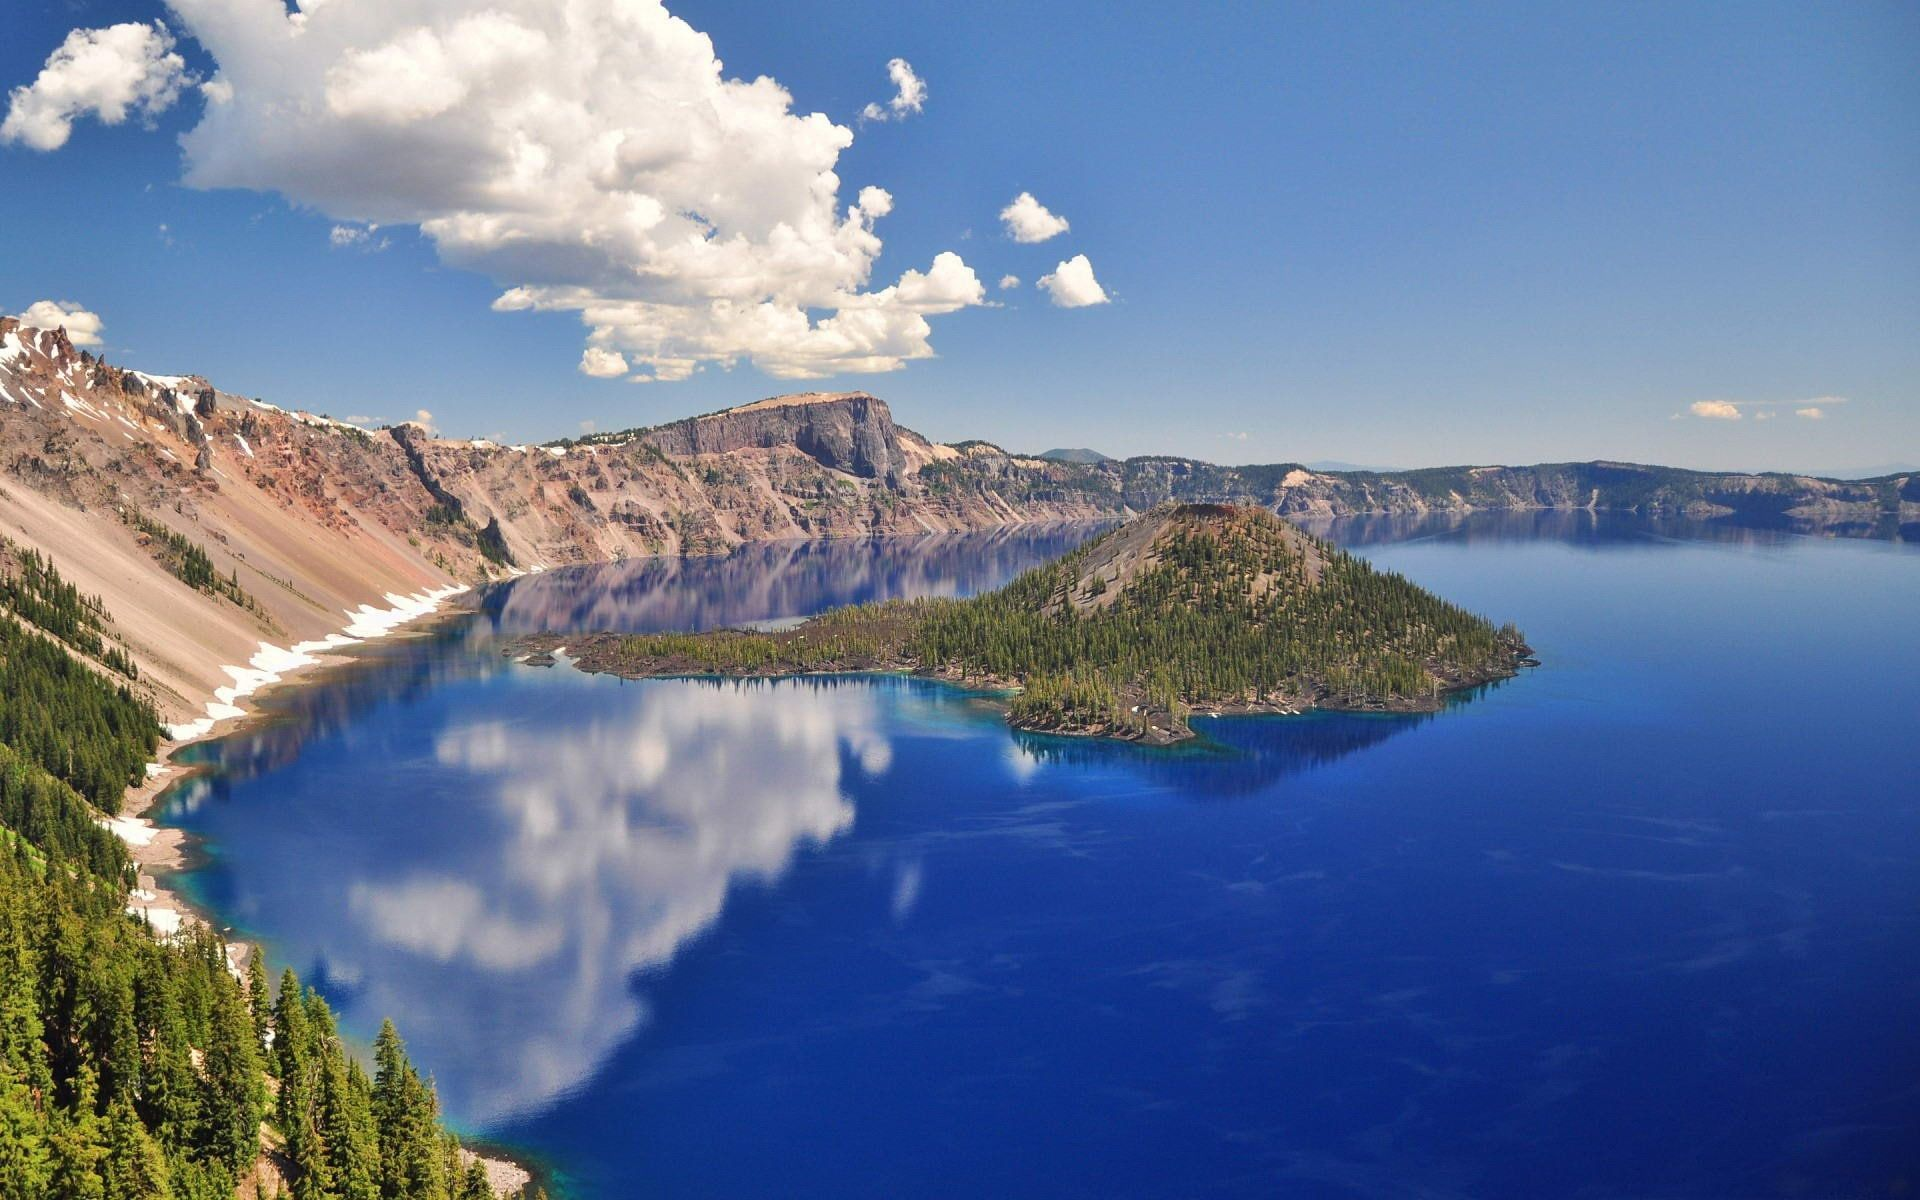 Crater Lake (Oregon) crater lake #lake #Oregon #nature #reflection #sky #clouds #1080P #wallpaper #hdwallpaper #desktop #craterlakeoregon Crater Lake (Oregon) crater lake #lake #Oregon #nature #reflection #sky #clouds #1080P #wallpaper #hdwallpaper #desktop #craterlakeoregon